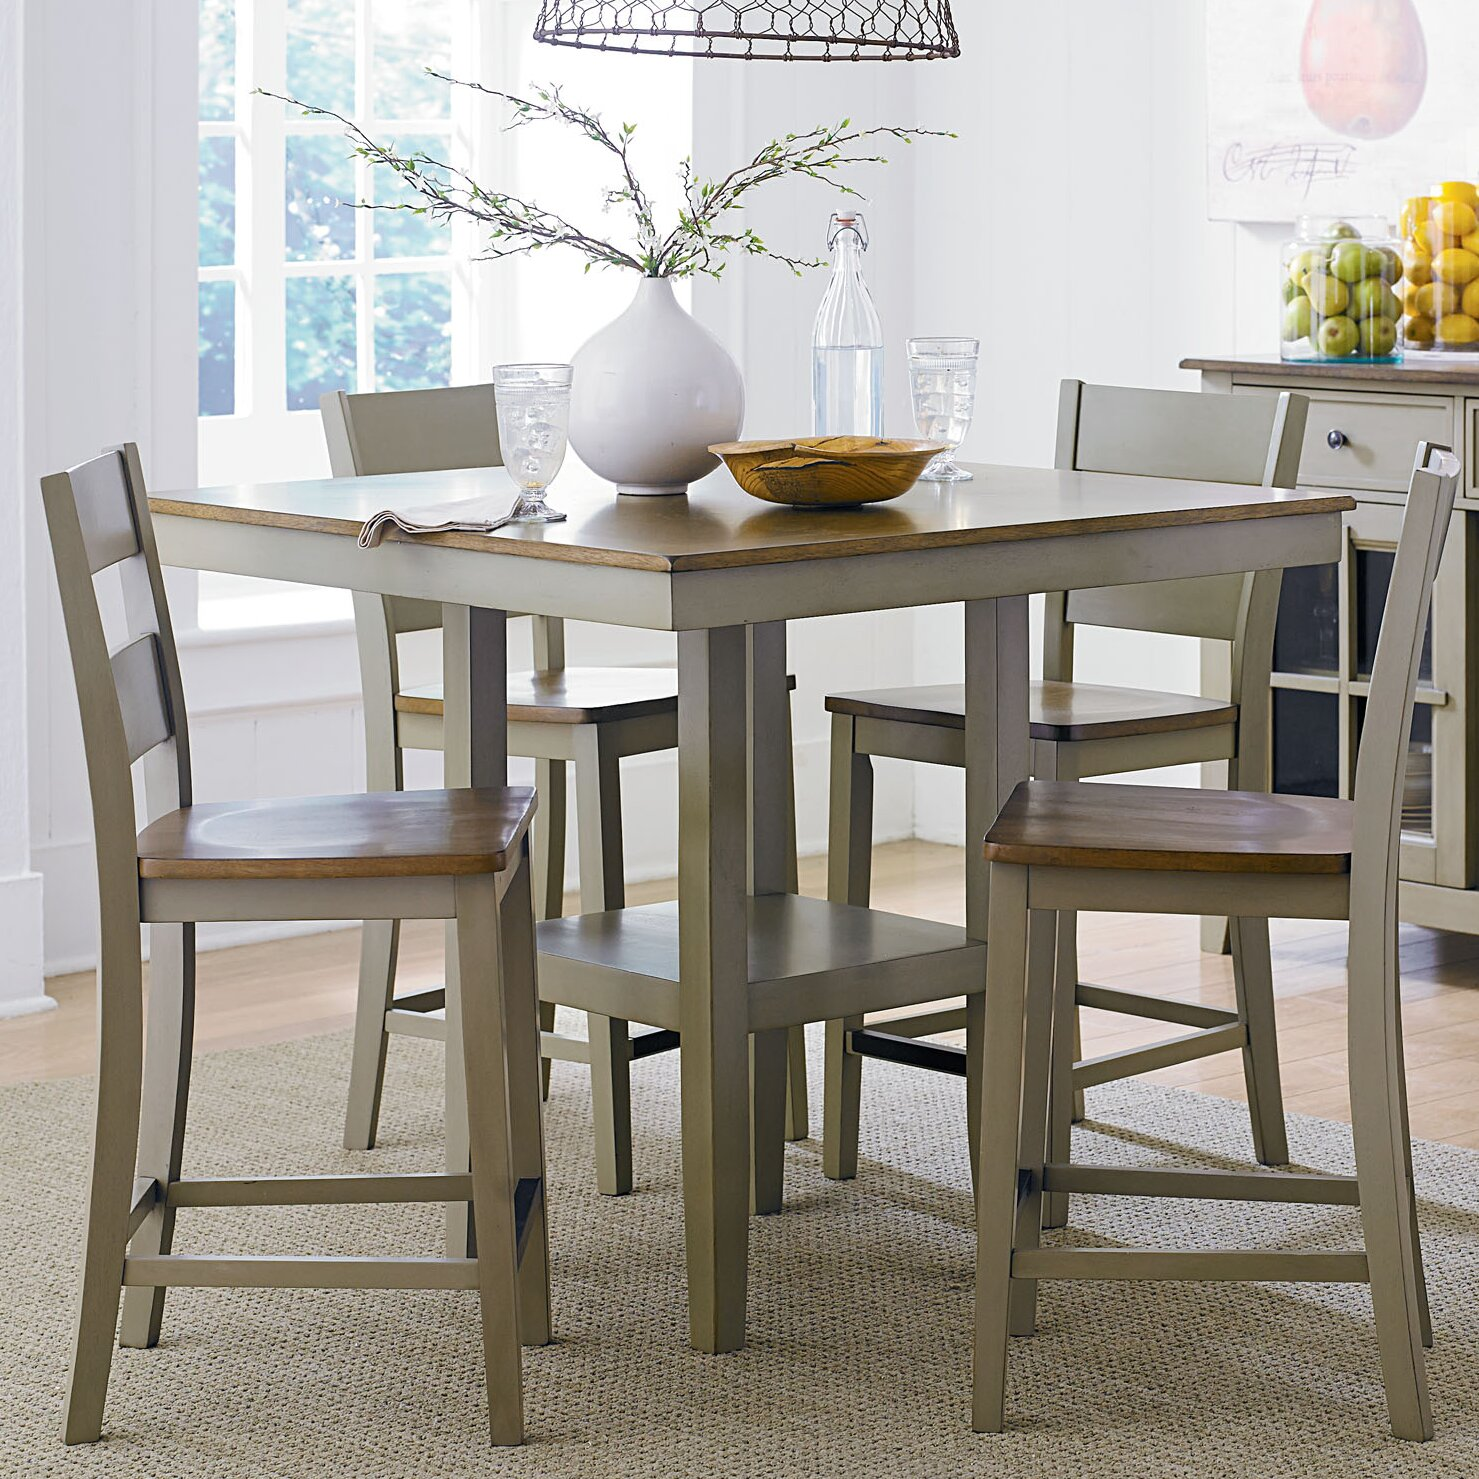 Counter Height Dining Tables: Standard Furniture 5 Pieces Counter Height Dining Set